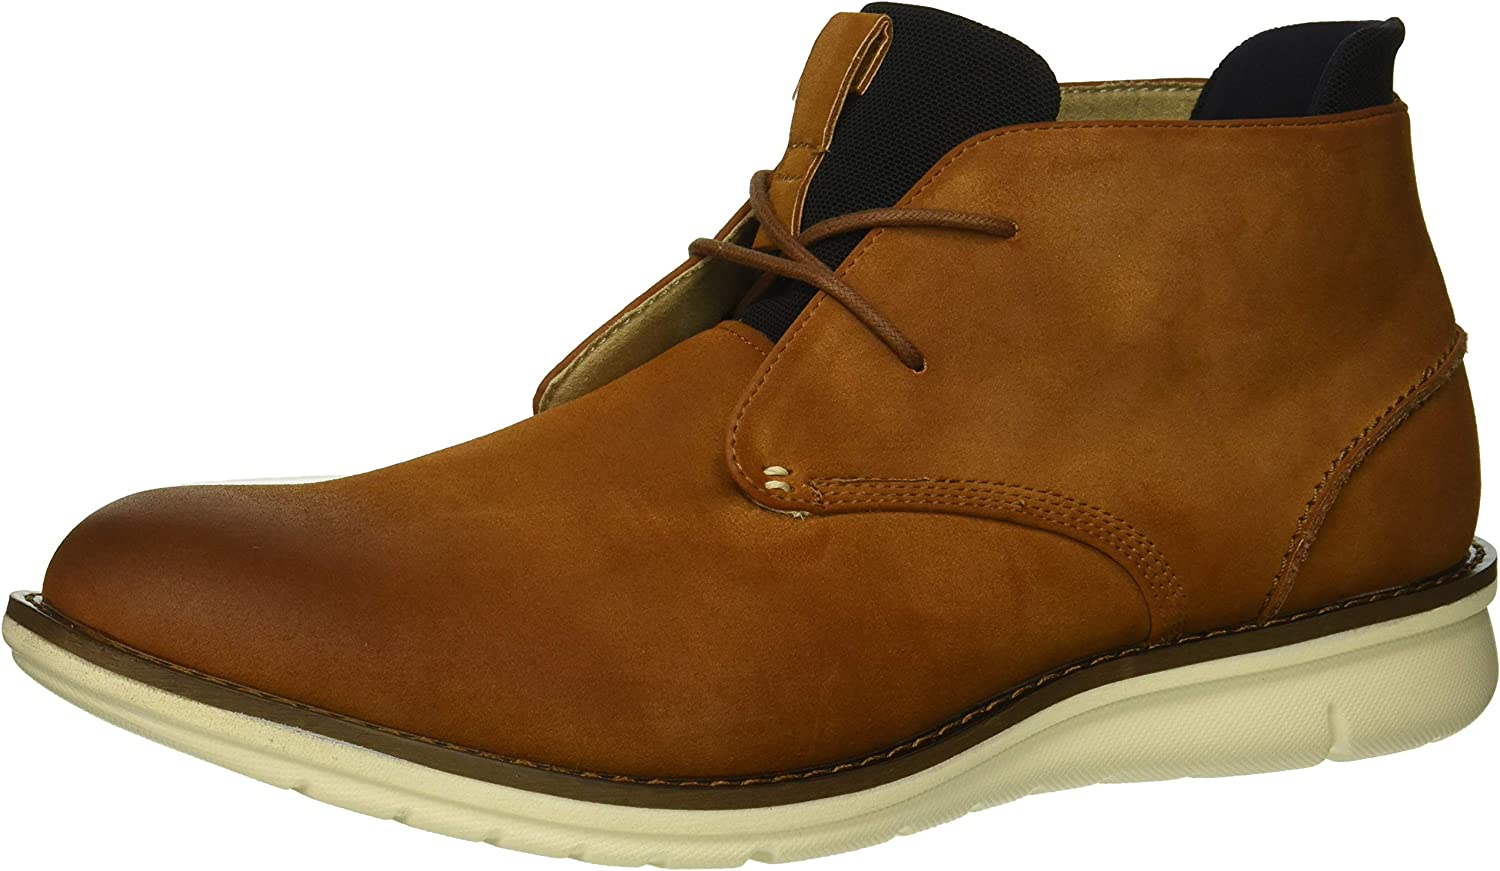 Kenneth Cole REACTION Hommes's Casino Chukka démarrage, tan Navy, 10.5 M US